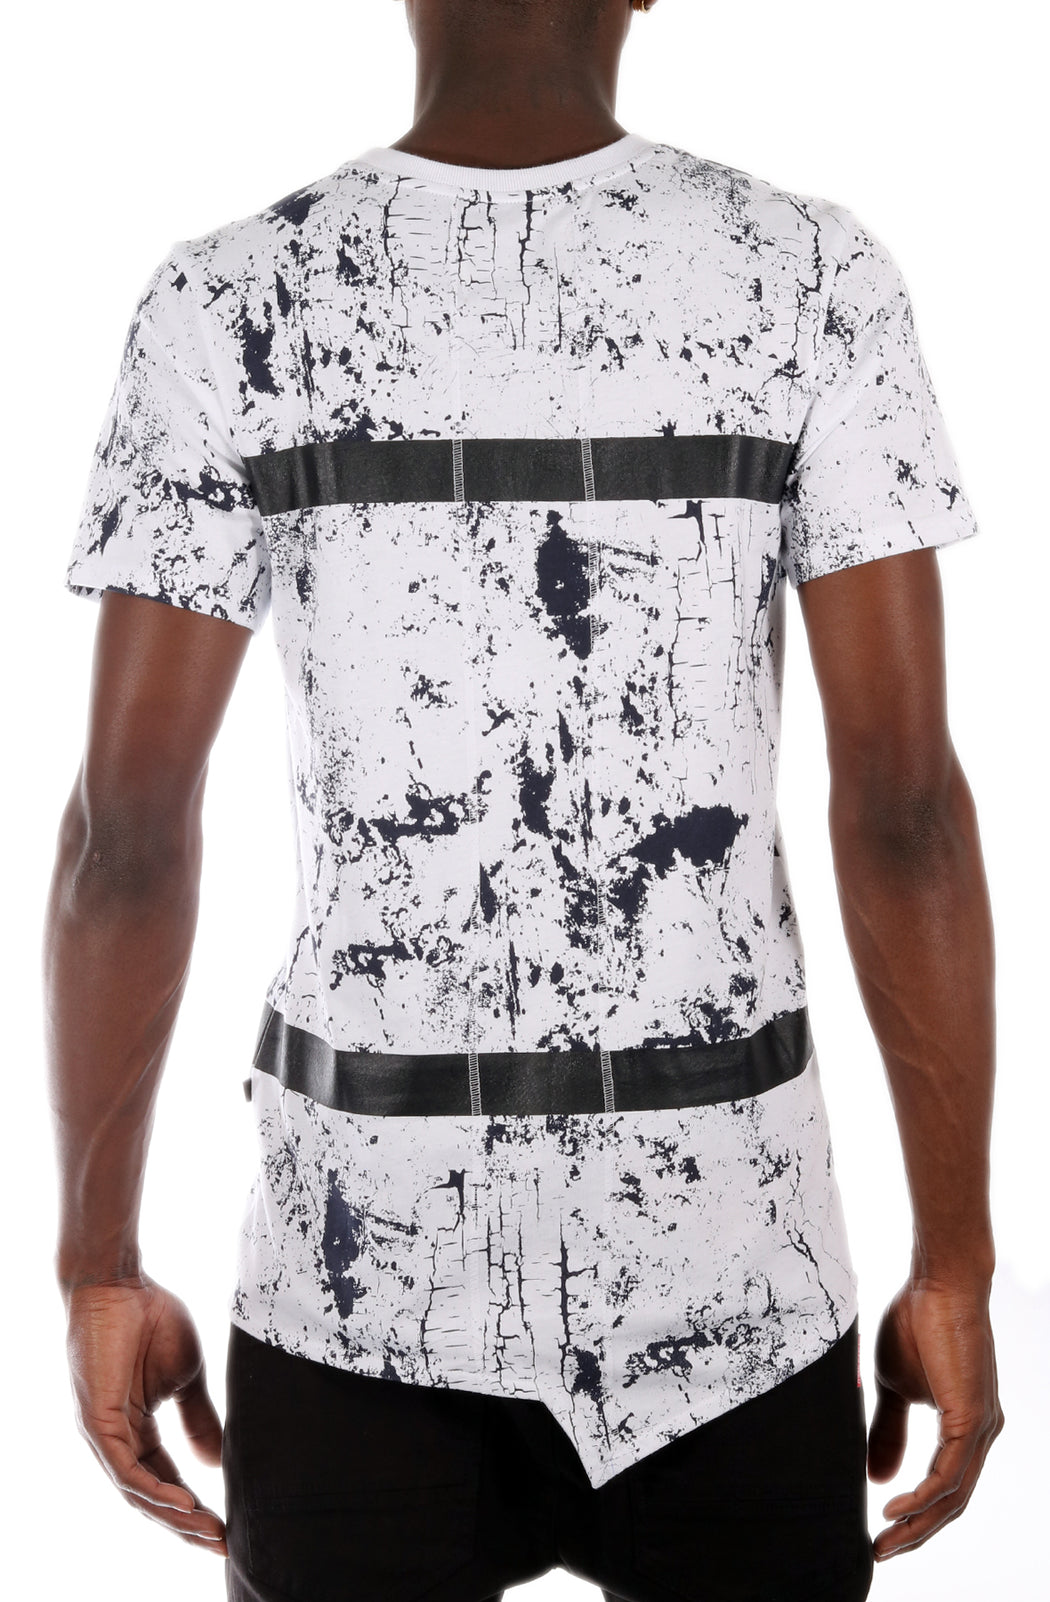 The SQZ Premium Cotton Marble Print T-Shirt in White (Sty GT-4100-White)